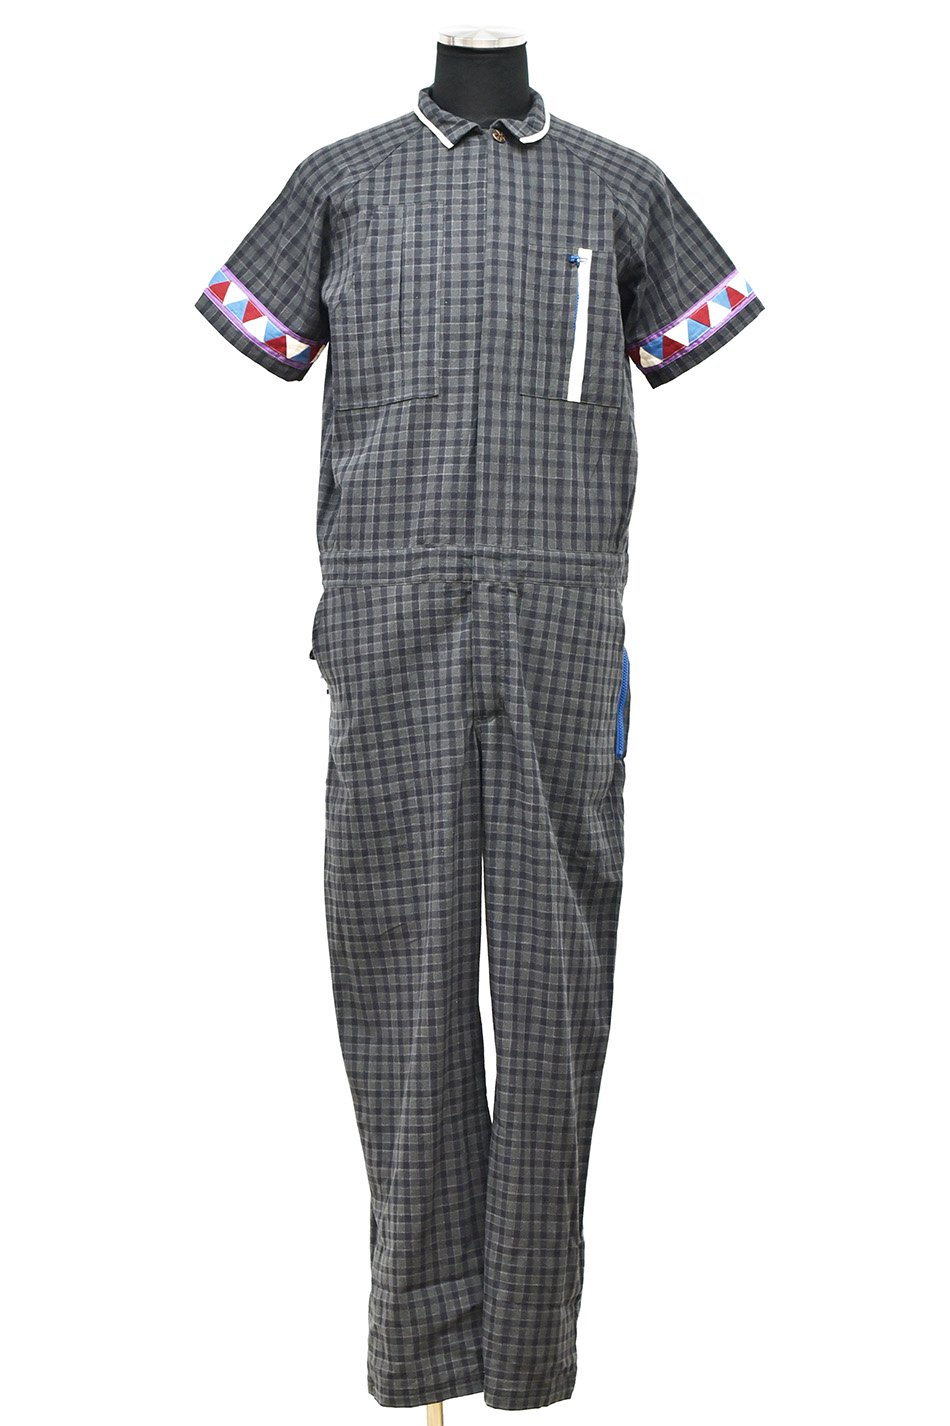 ARIGATO FAKKYU - アリガトファッキュ S/S OVERALL / GRAY<img class='new_mark_img2' src='https://img.shop-pro.jp/img/new/icons5.gif' style='border:none;display:inline;margin:0px;padding:0px;width:auto;' />